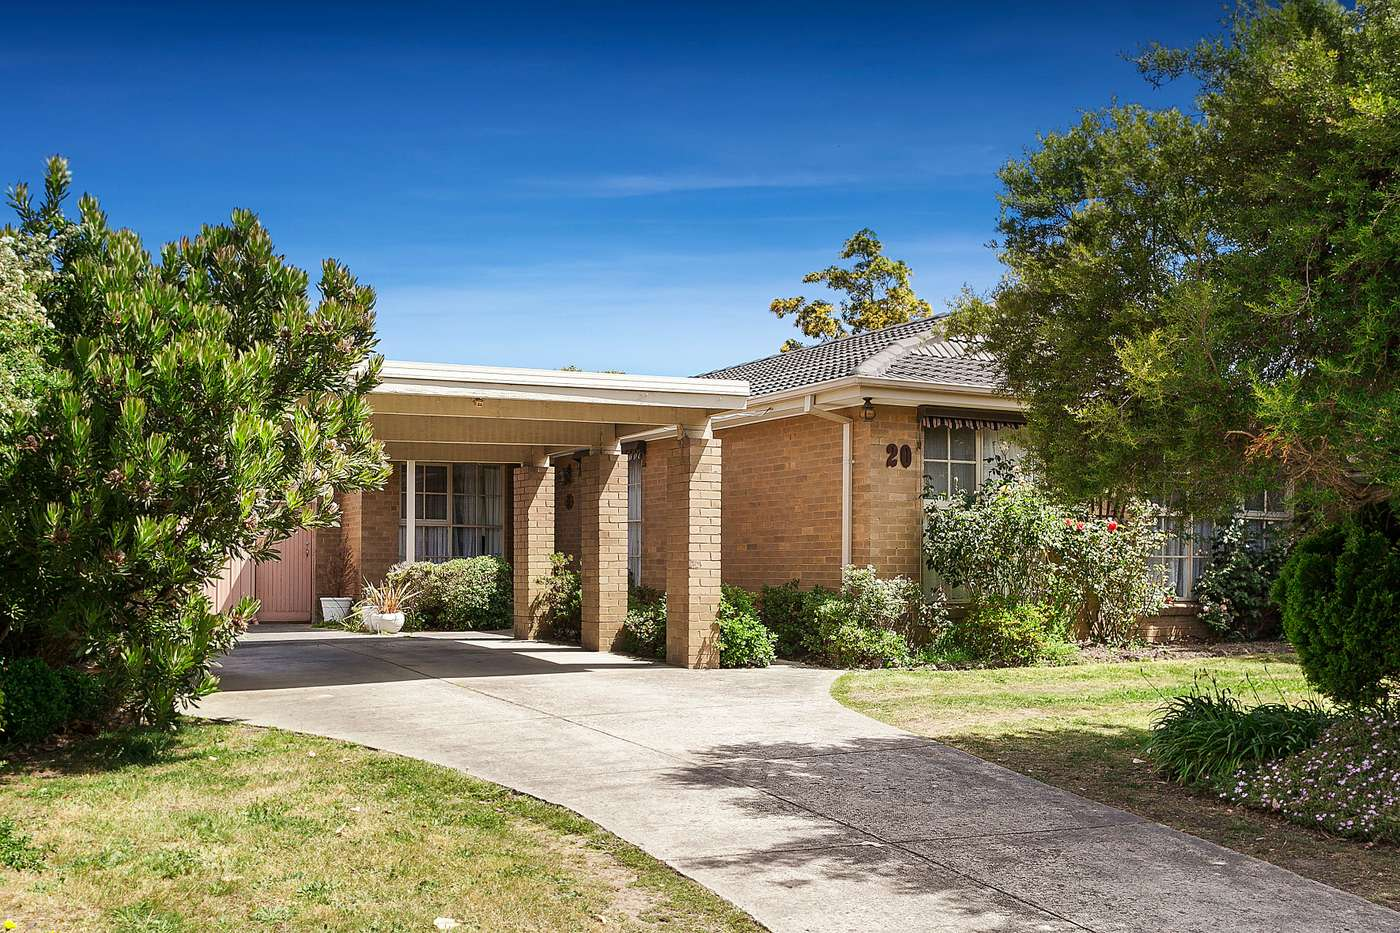 Main view of Homely house listing, 20 Annandale Crescent, Glen Waverley, VIC 3150